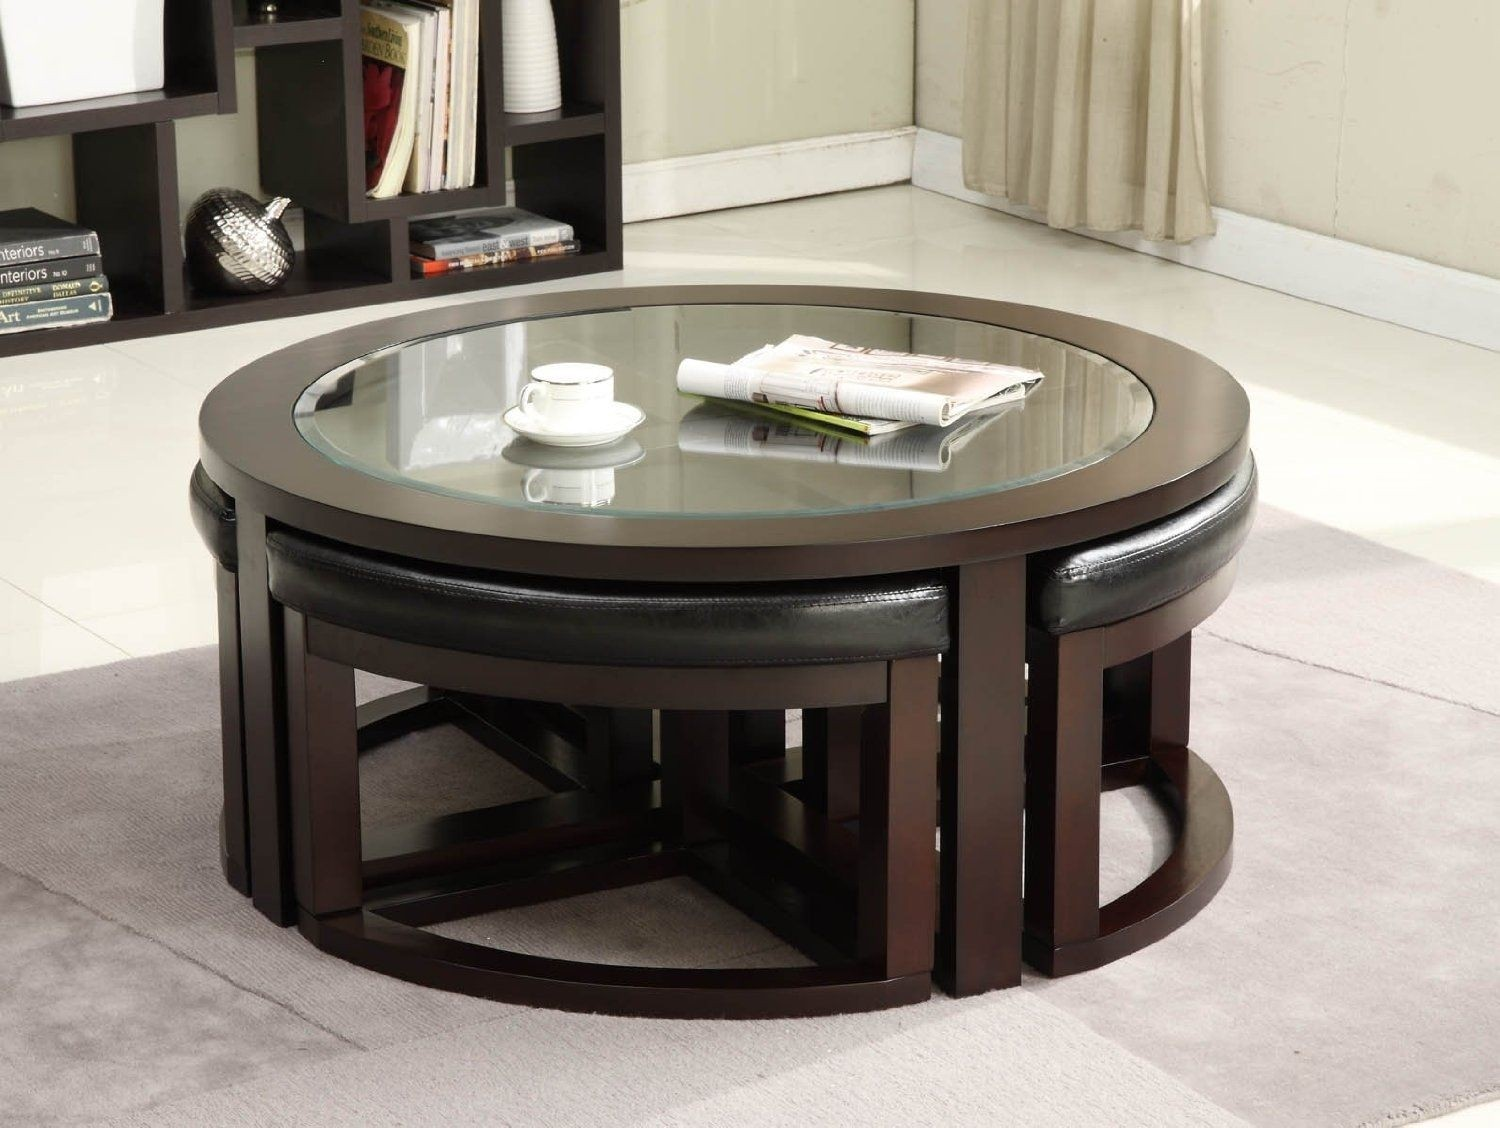 Attrayant Round Cocktail Table With 4 Stools